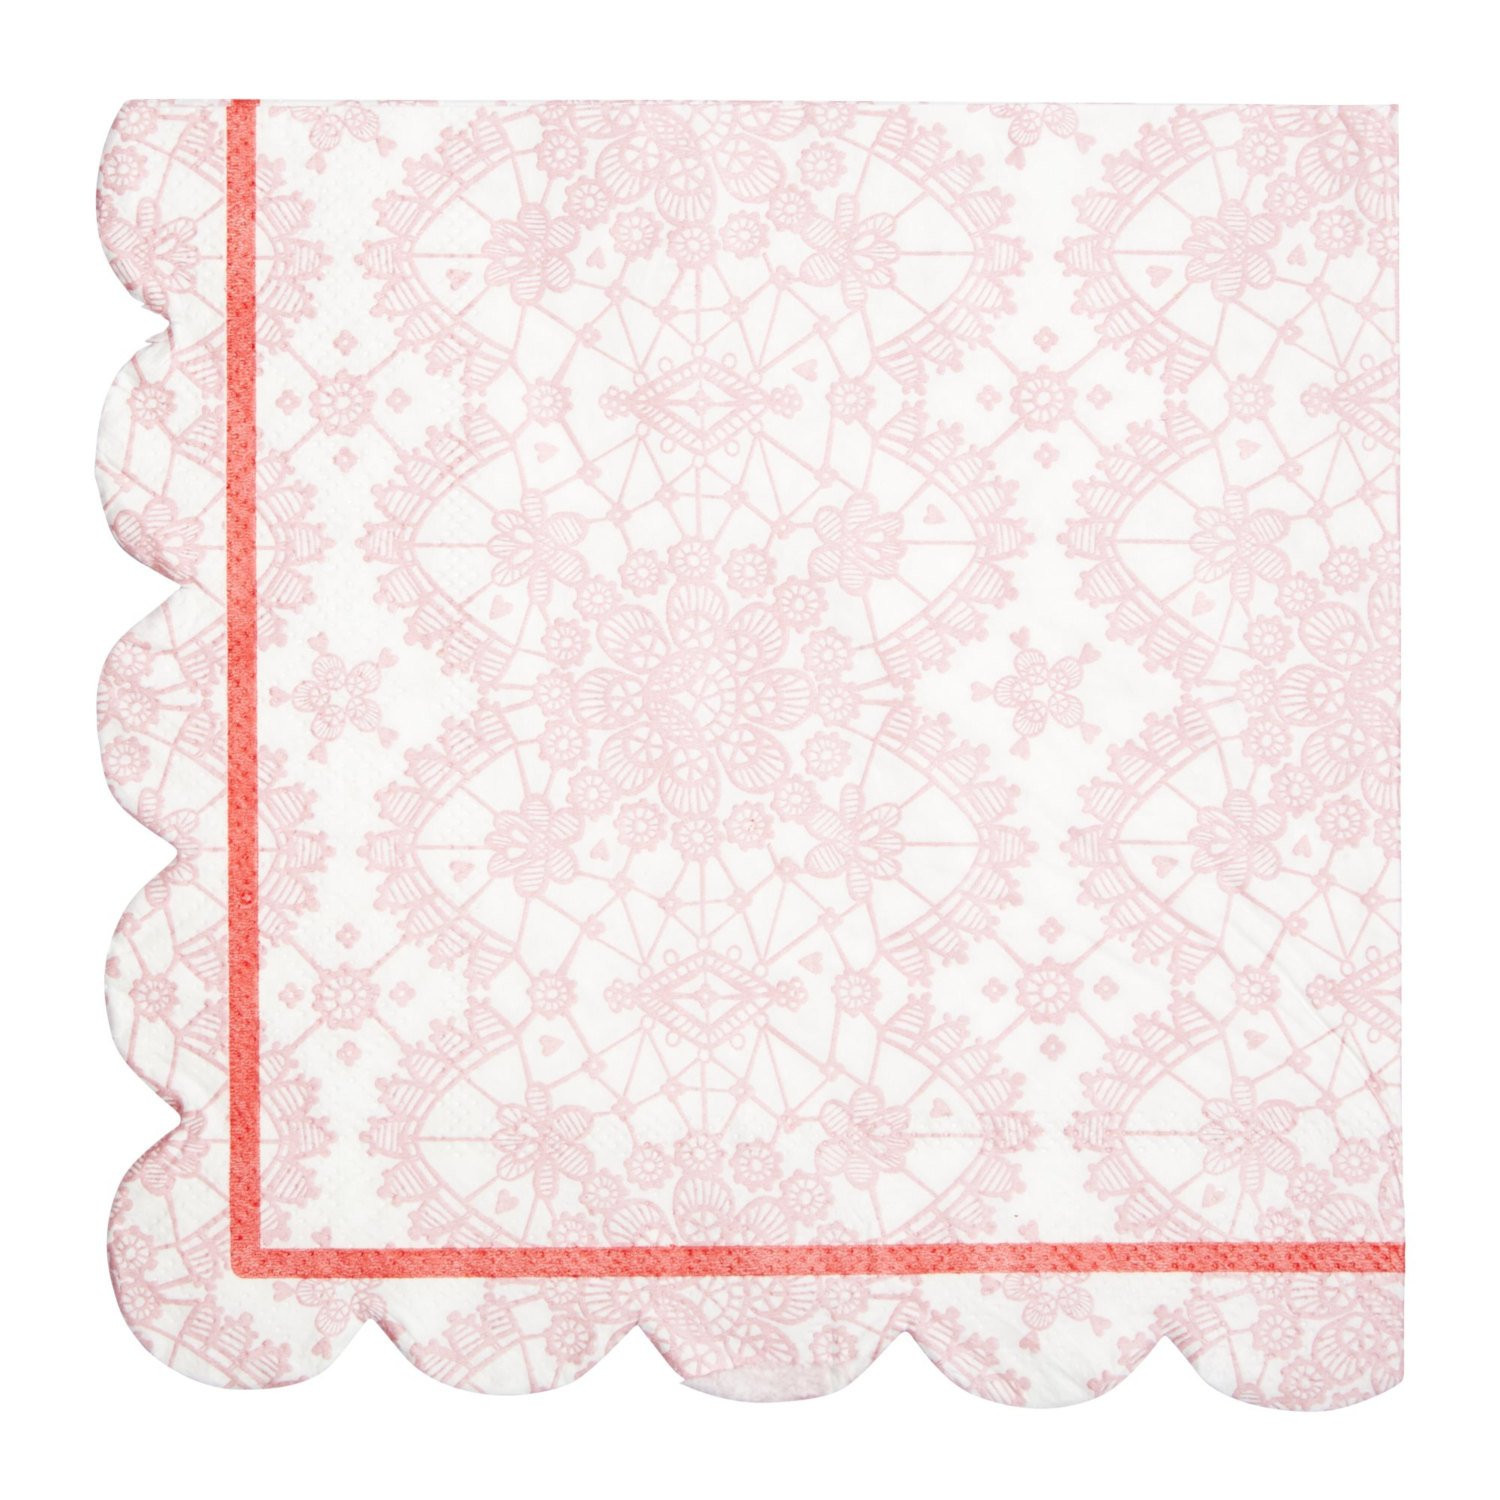 Lace Paper Napkins Beautiful Pink Lace Napkins Of Contemporary 49 Images Lace Paper Napkins